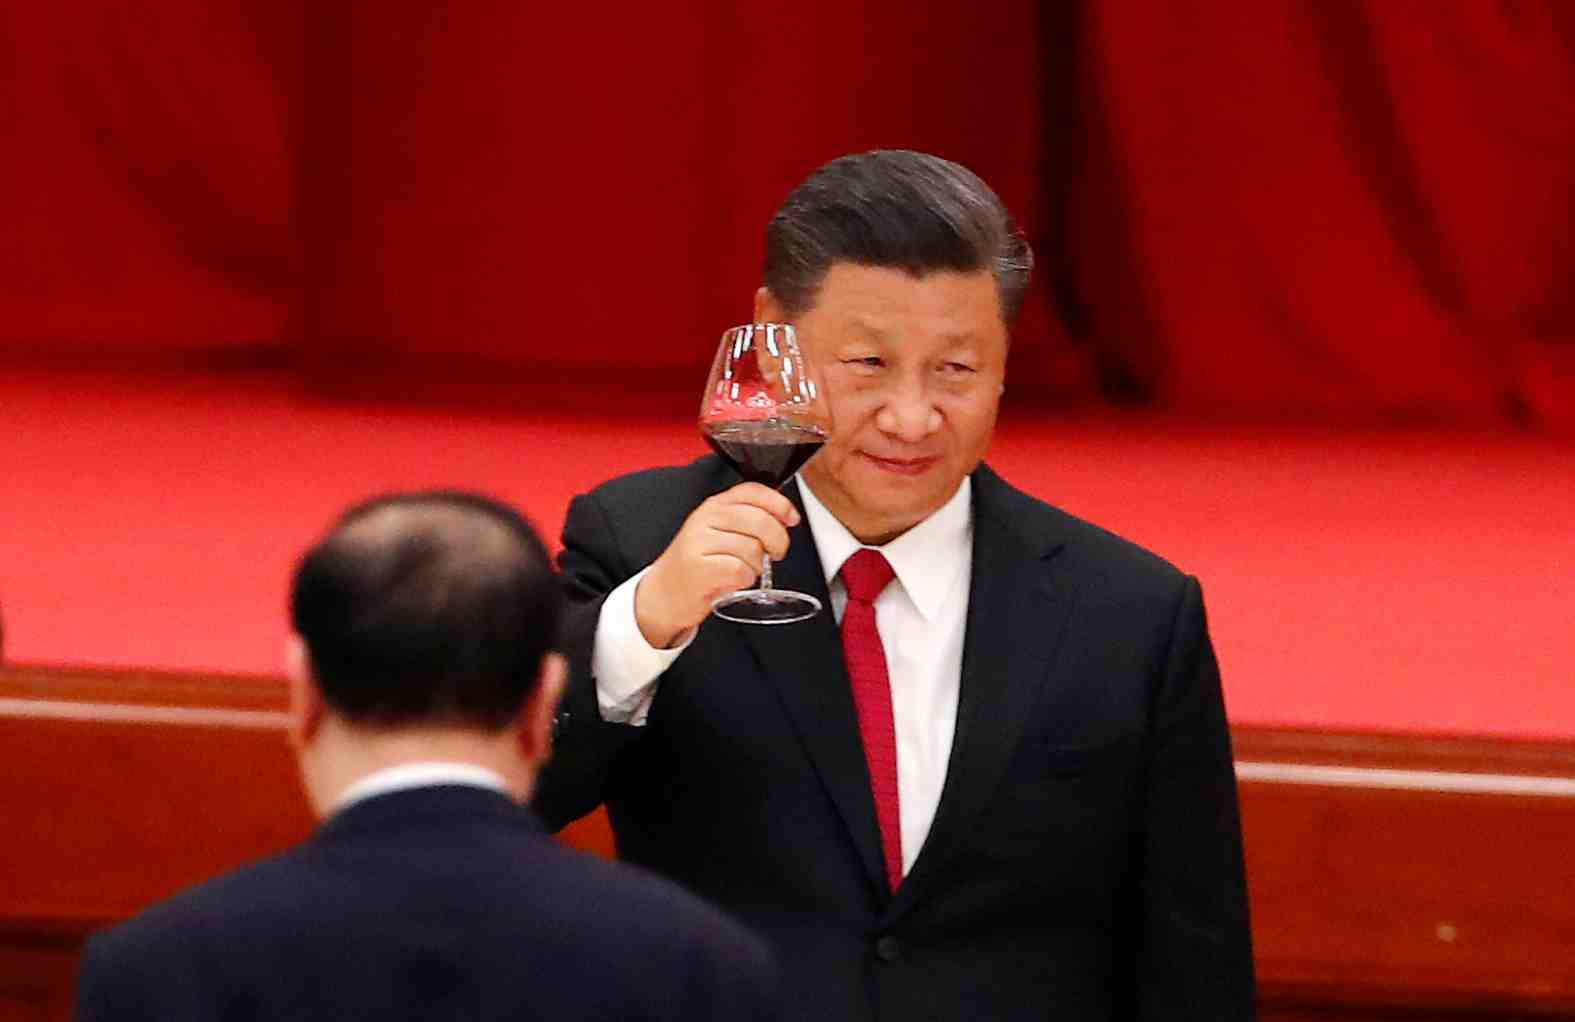 FILE PHOTO: Chinese President Xi Jinping attends the National Day reception on the eve of the 71st anniversary of the founding of the People's Republic of China in Beijing, China September 30, 2020. REUTERS/Thomas Peter/File Photo